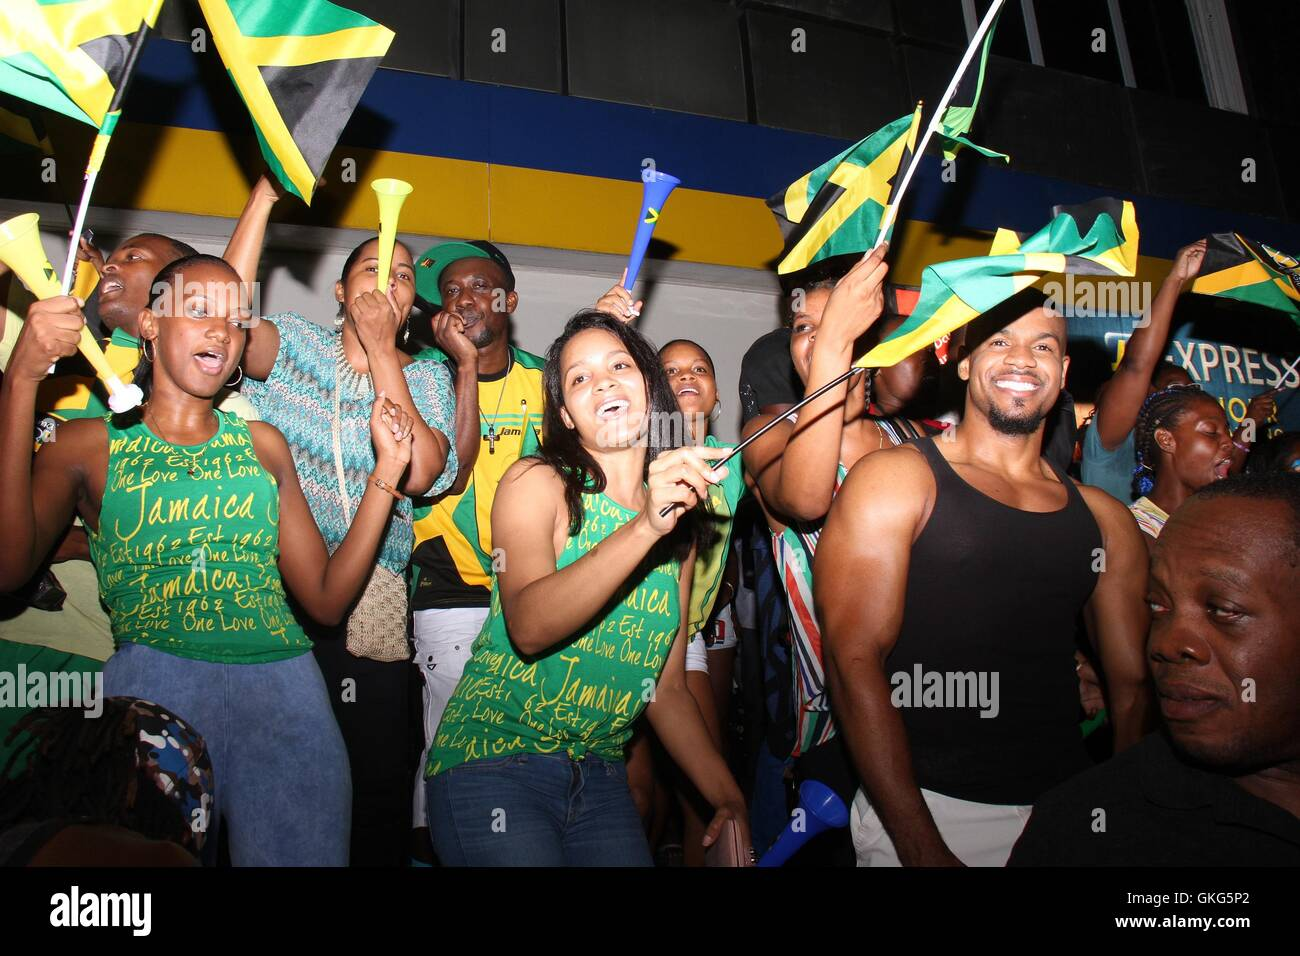 Kingston, Jamaica. 19th Aug, 2016. People celebrate Jamaican athletes winning the Olympic gold medal of the men's - Stock Image